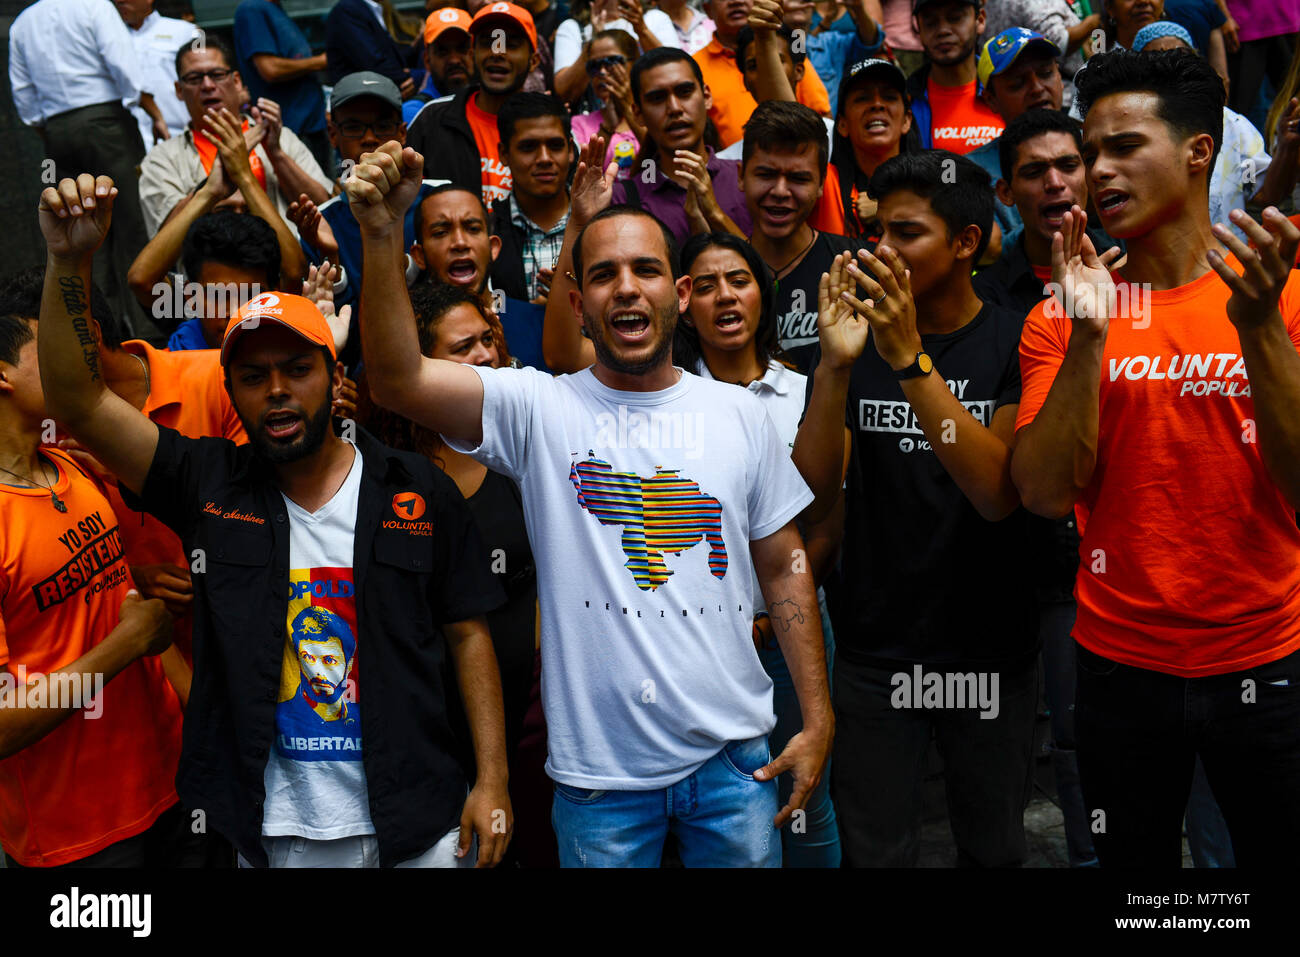 12 March 2018, Venezuela, Caracas: Activists protest in front of the UN headquarters in Caracas. The opposition - Stock Image